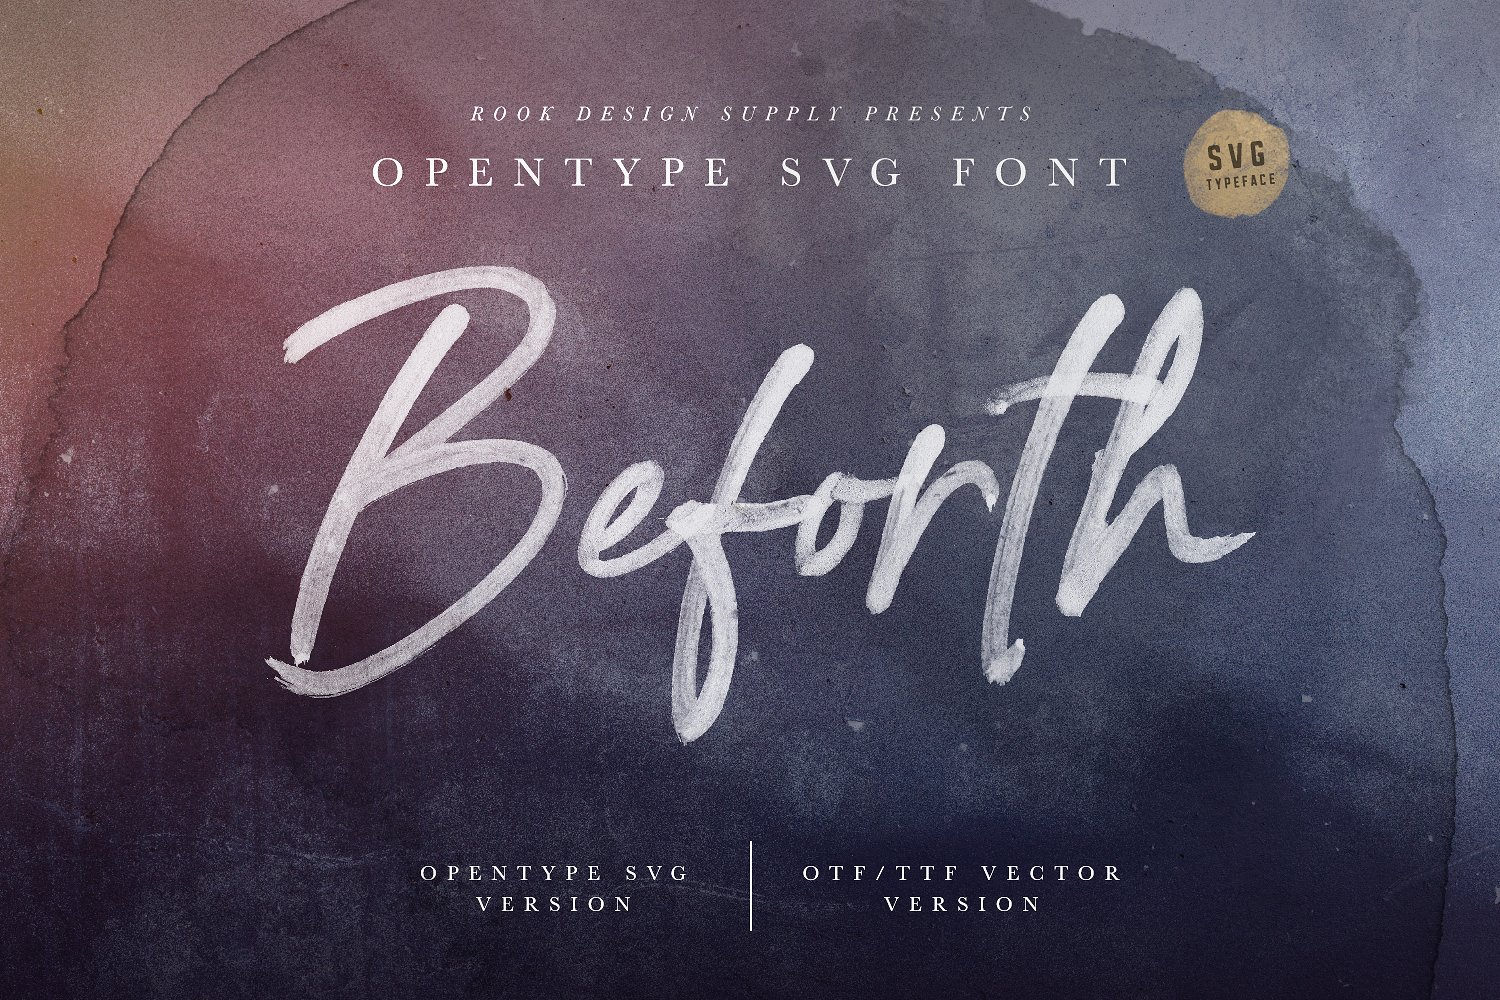 Beforth SVG Font - Available on Creative Market